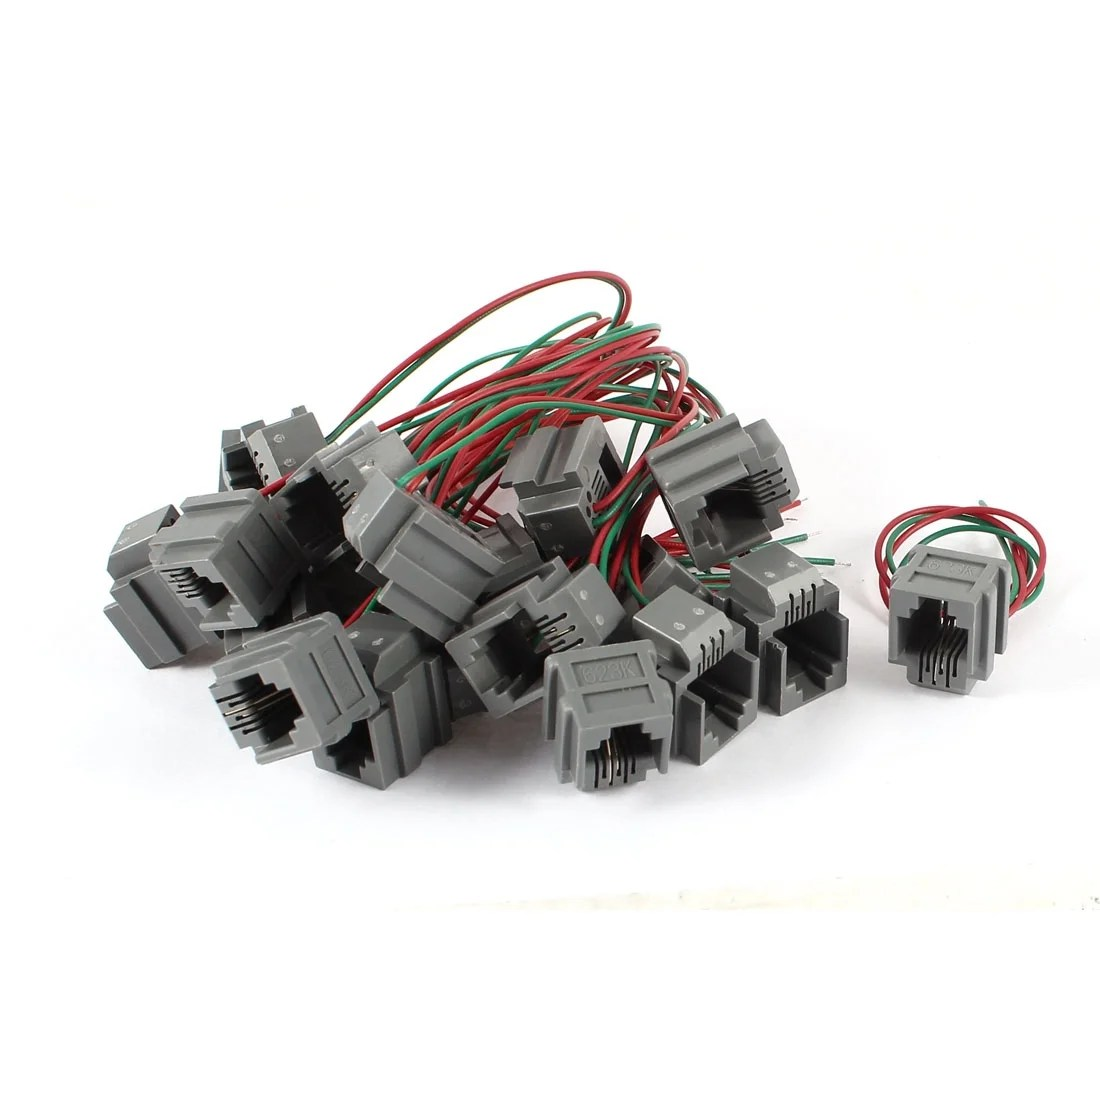 hight resolution of shop unique bargains 20 pcs 623k 6p2c rj11 socket telephone cable connector w 8 wire free shipping on orders over 45 overstock 18455889